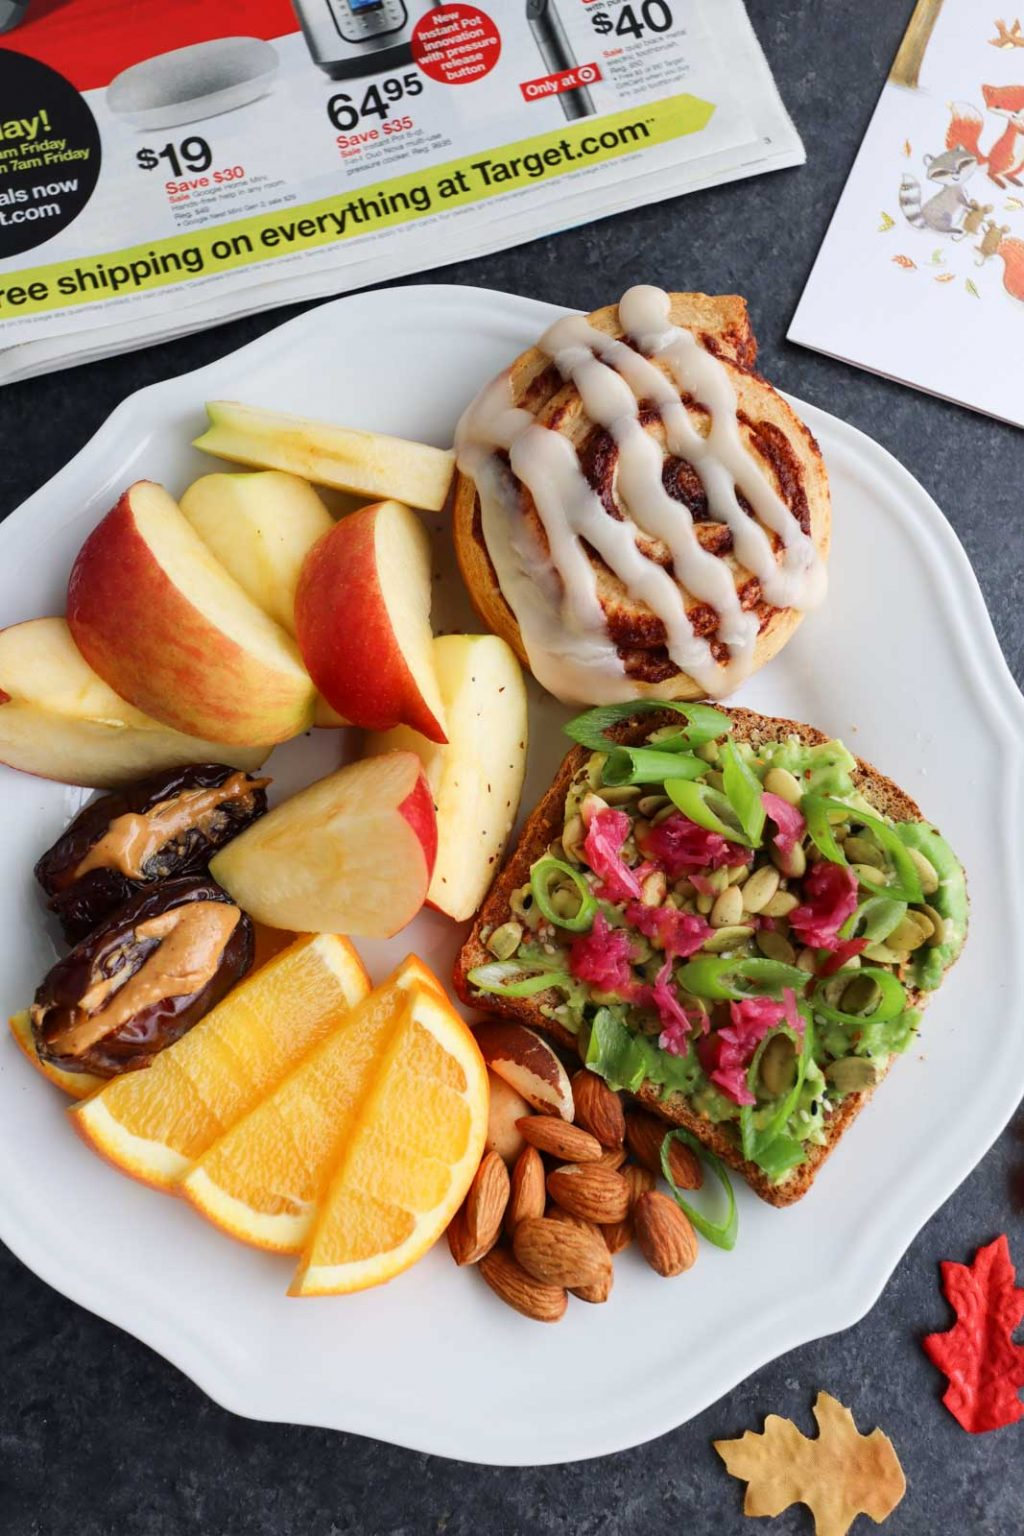 A white plate filled with avocado toast, cinnamon rolls, apple slices, orange slices, and dates.